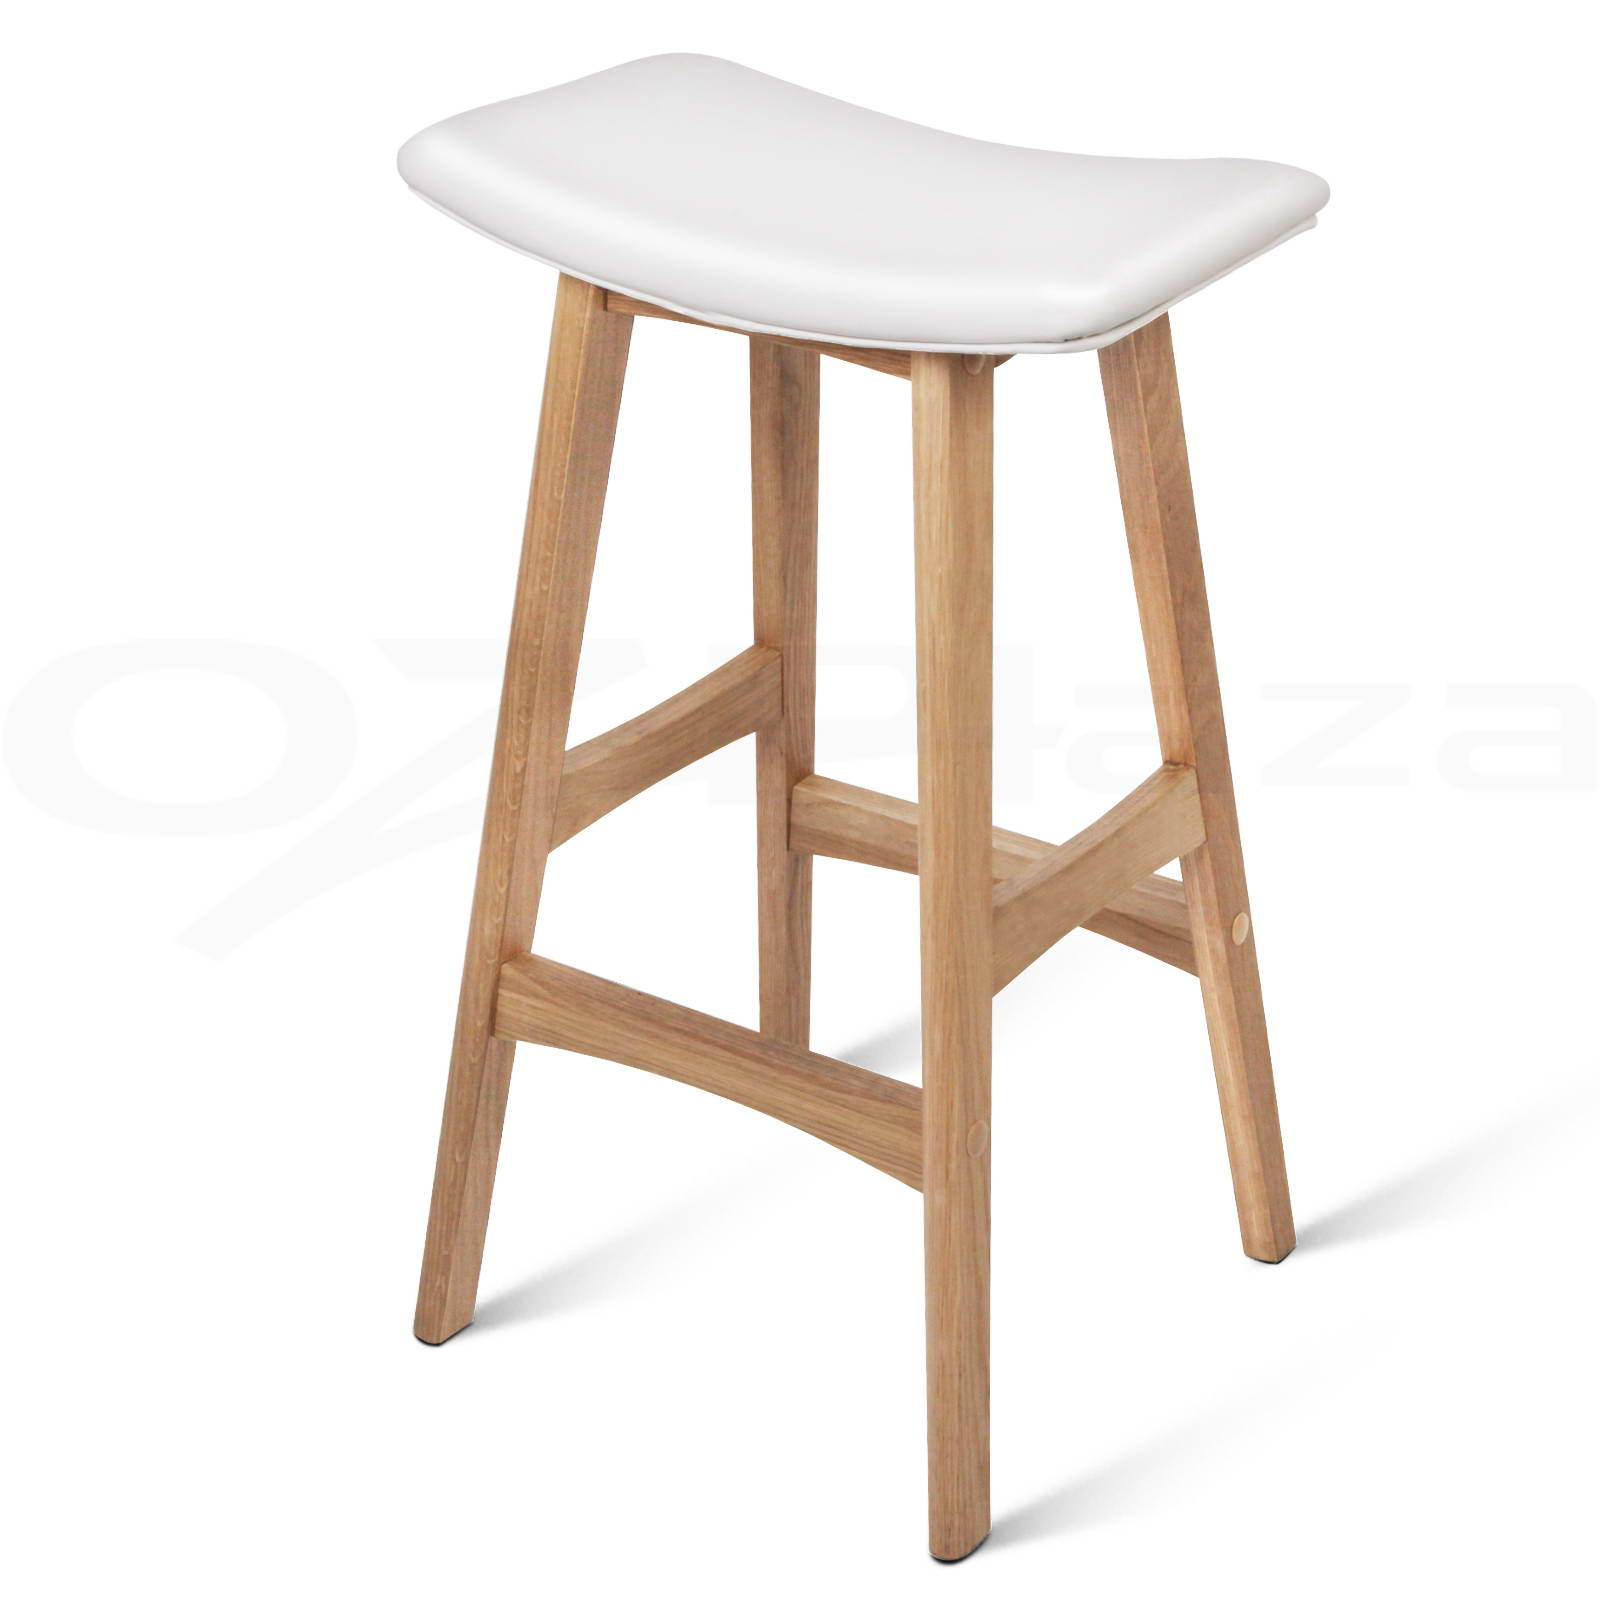 Wooden Furniture Stools ~ Oak wood bar stools wooden dining chairs kitchen side